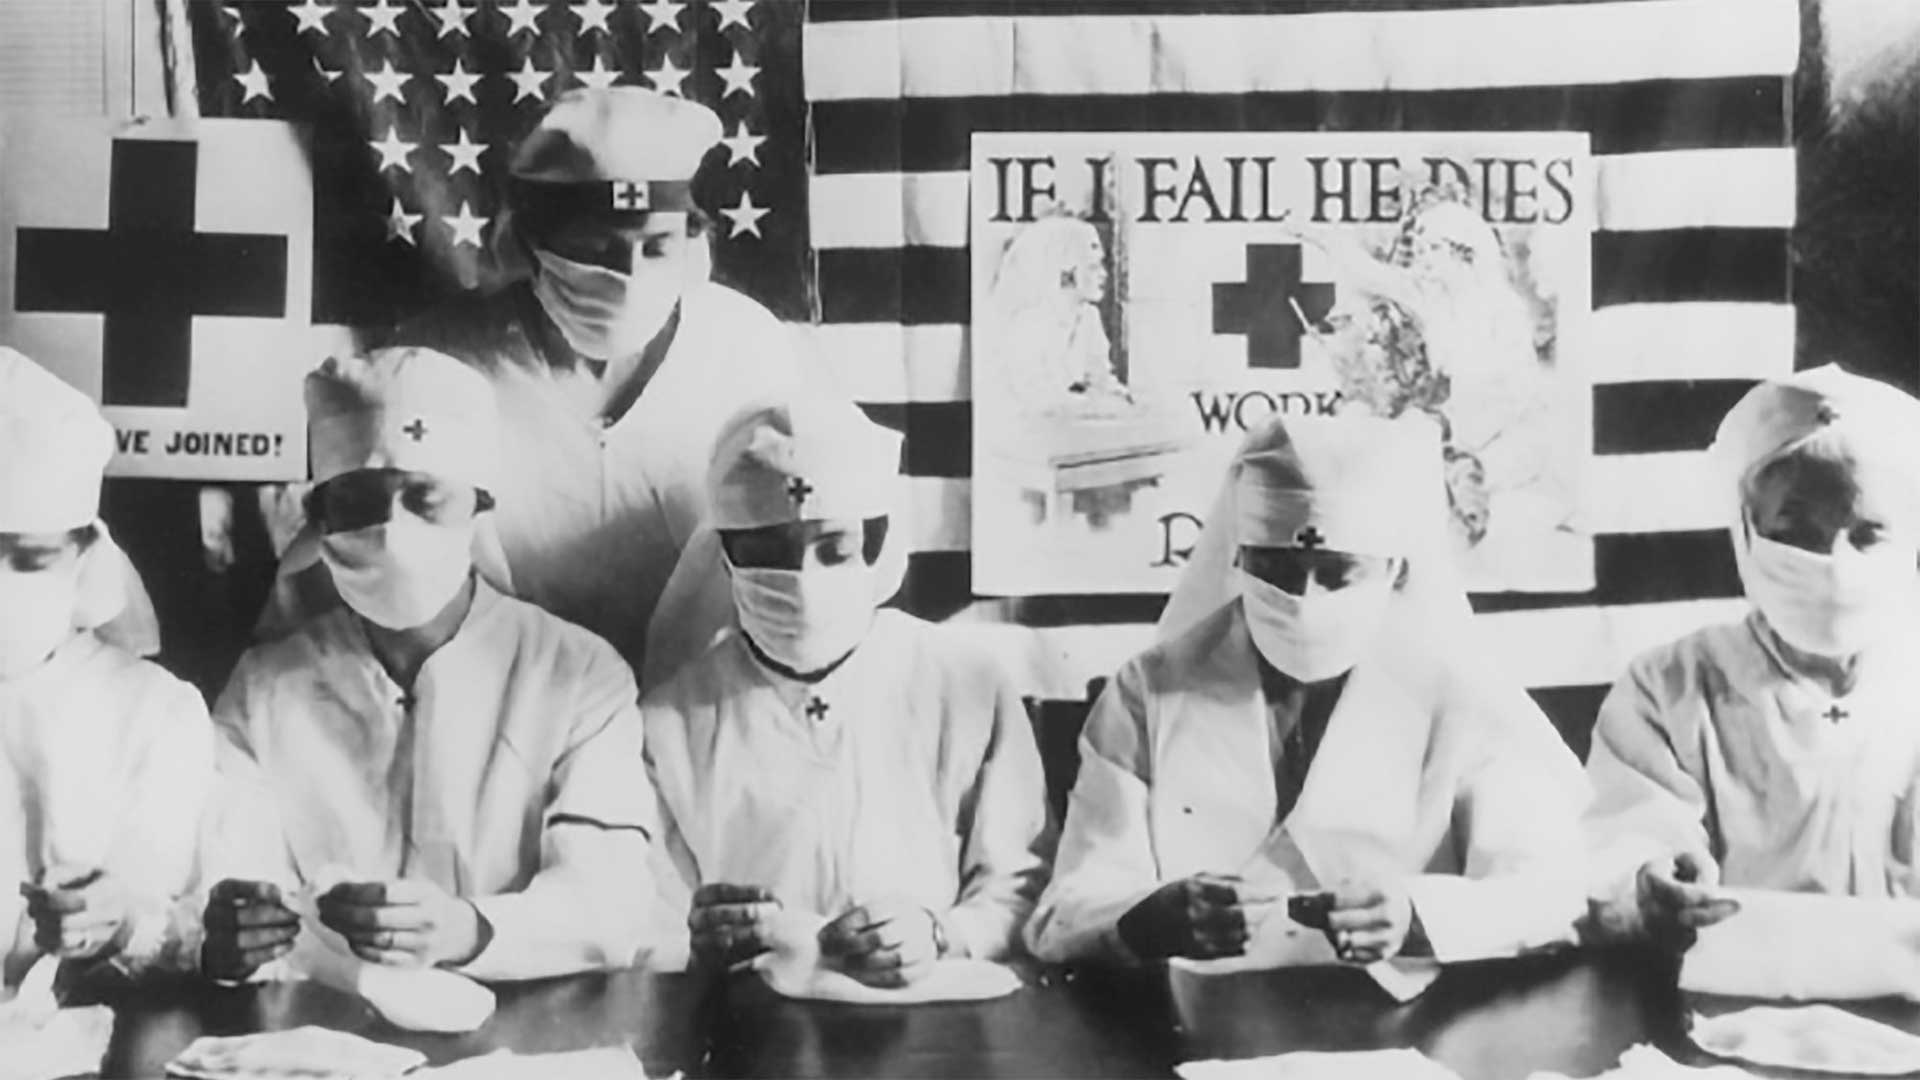 am_exp_influenza-1918_nurses-hero